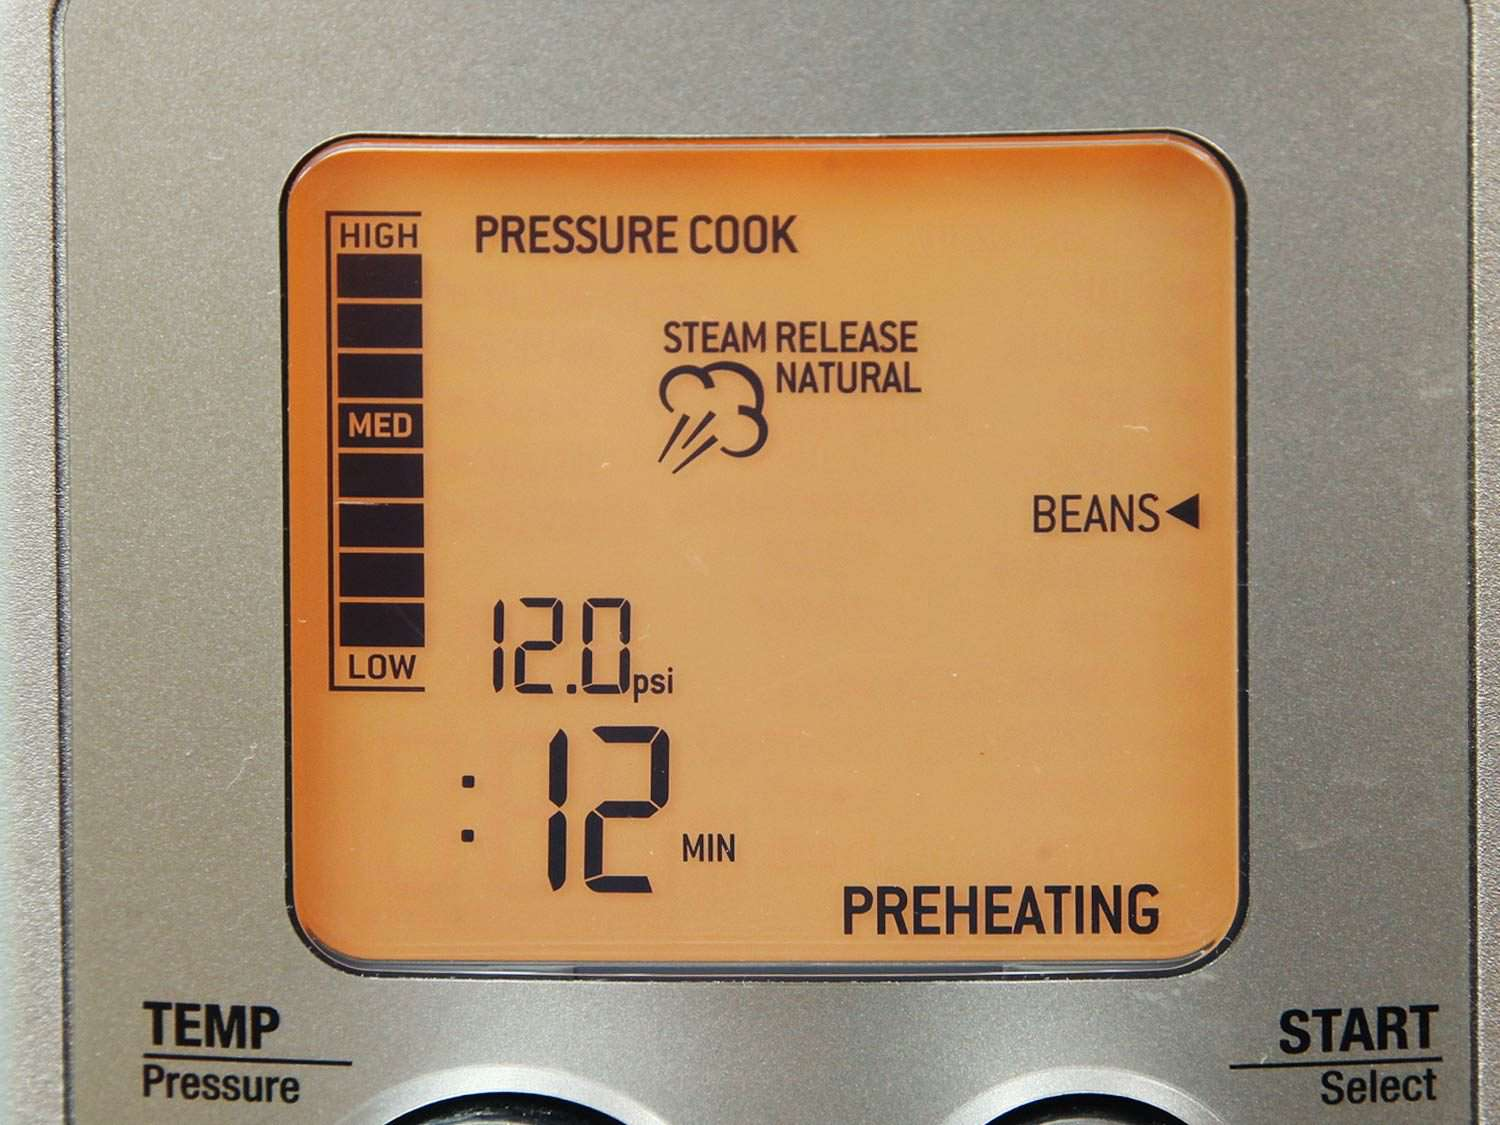 Display on Breville Fast Slow Pro